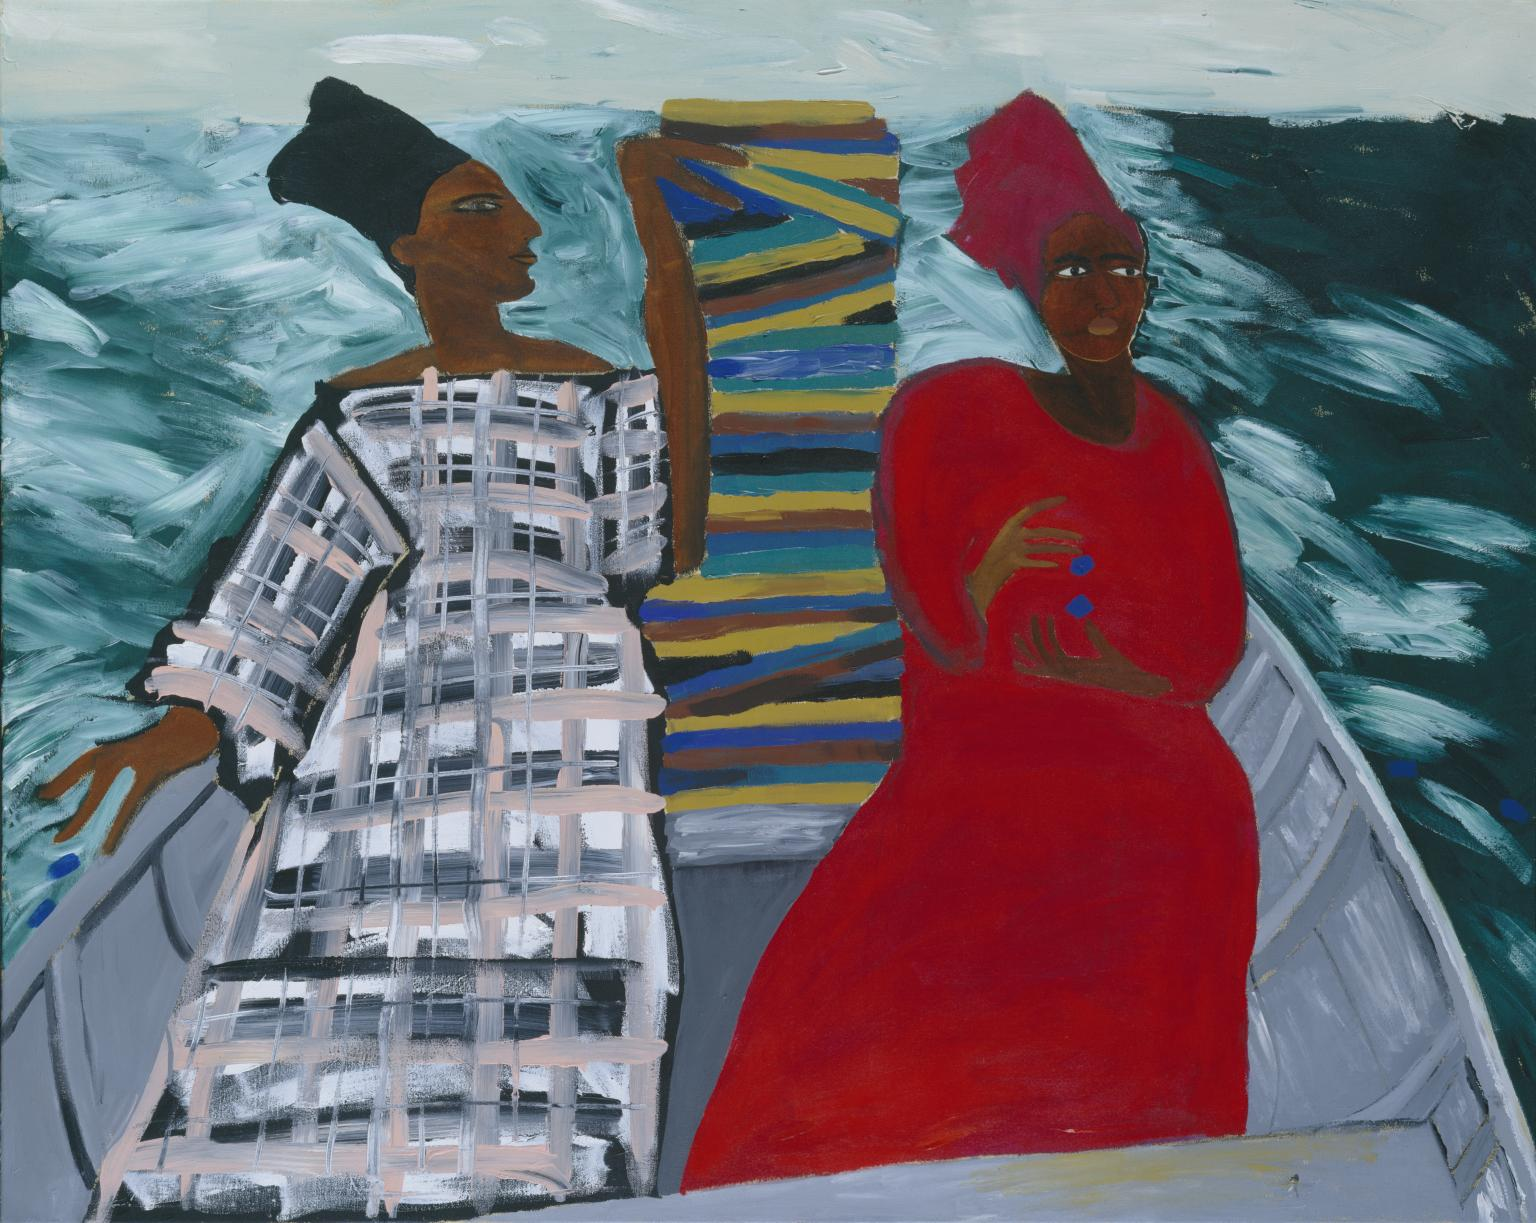 Between the Two my Heart is Balanced 1991 Lubaina Himid born 1954 Presented by the Patrons of New Art (Special Purchase Fund) through the Tate Gallery Foundation 1995 http://www.tate.org.uk/art/work/T06947